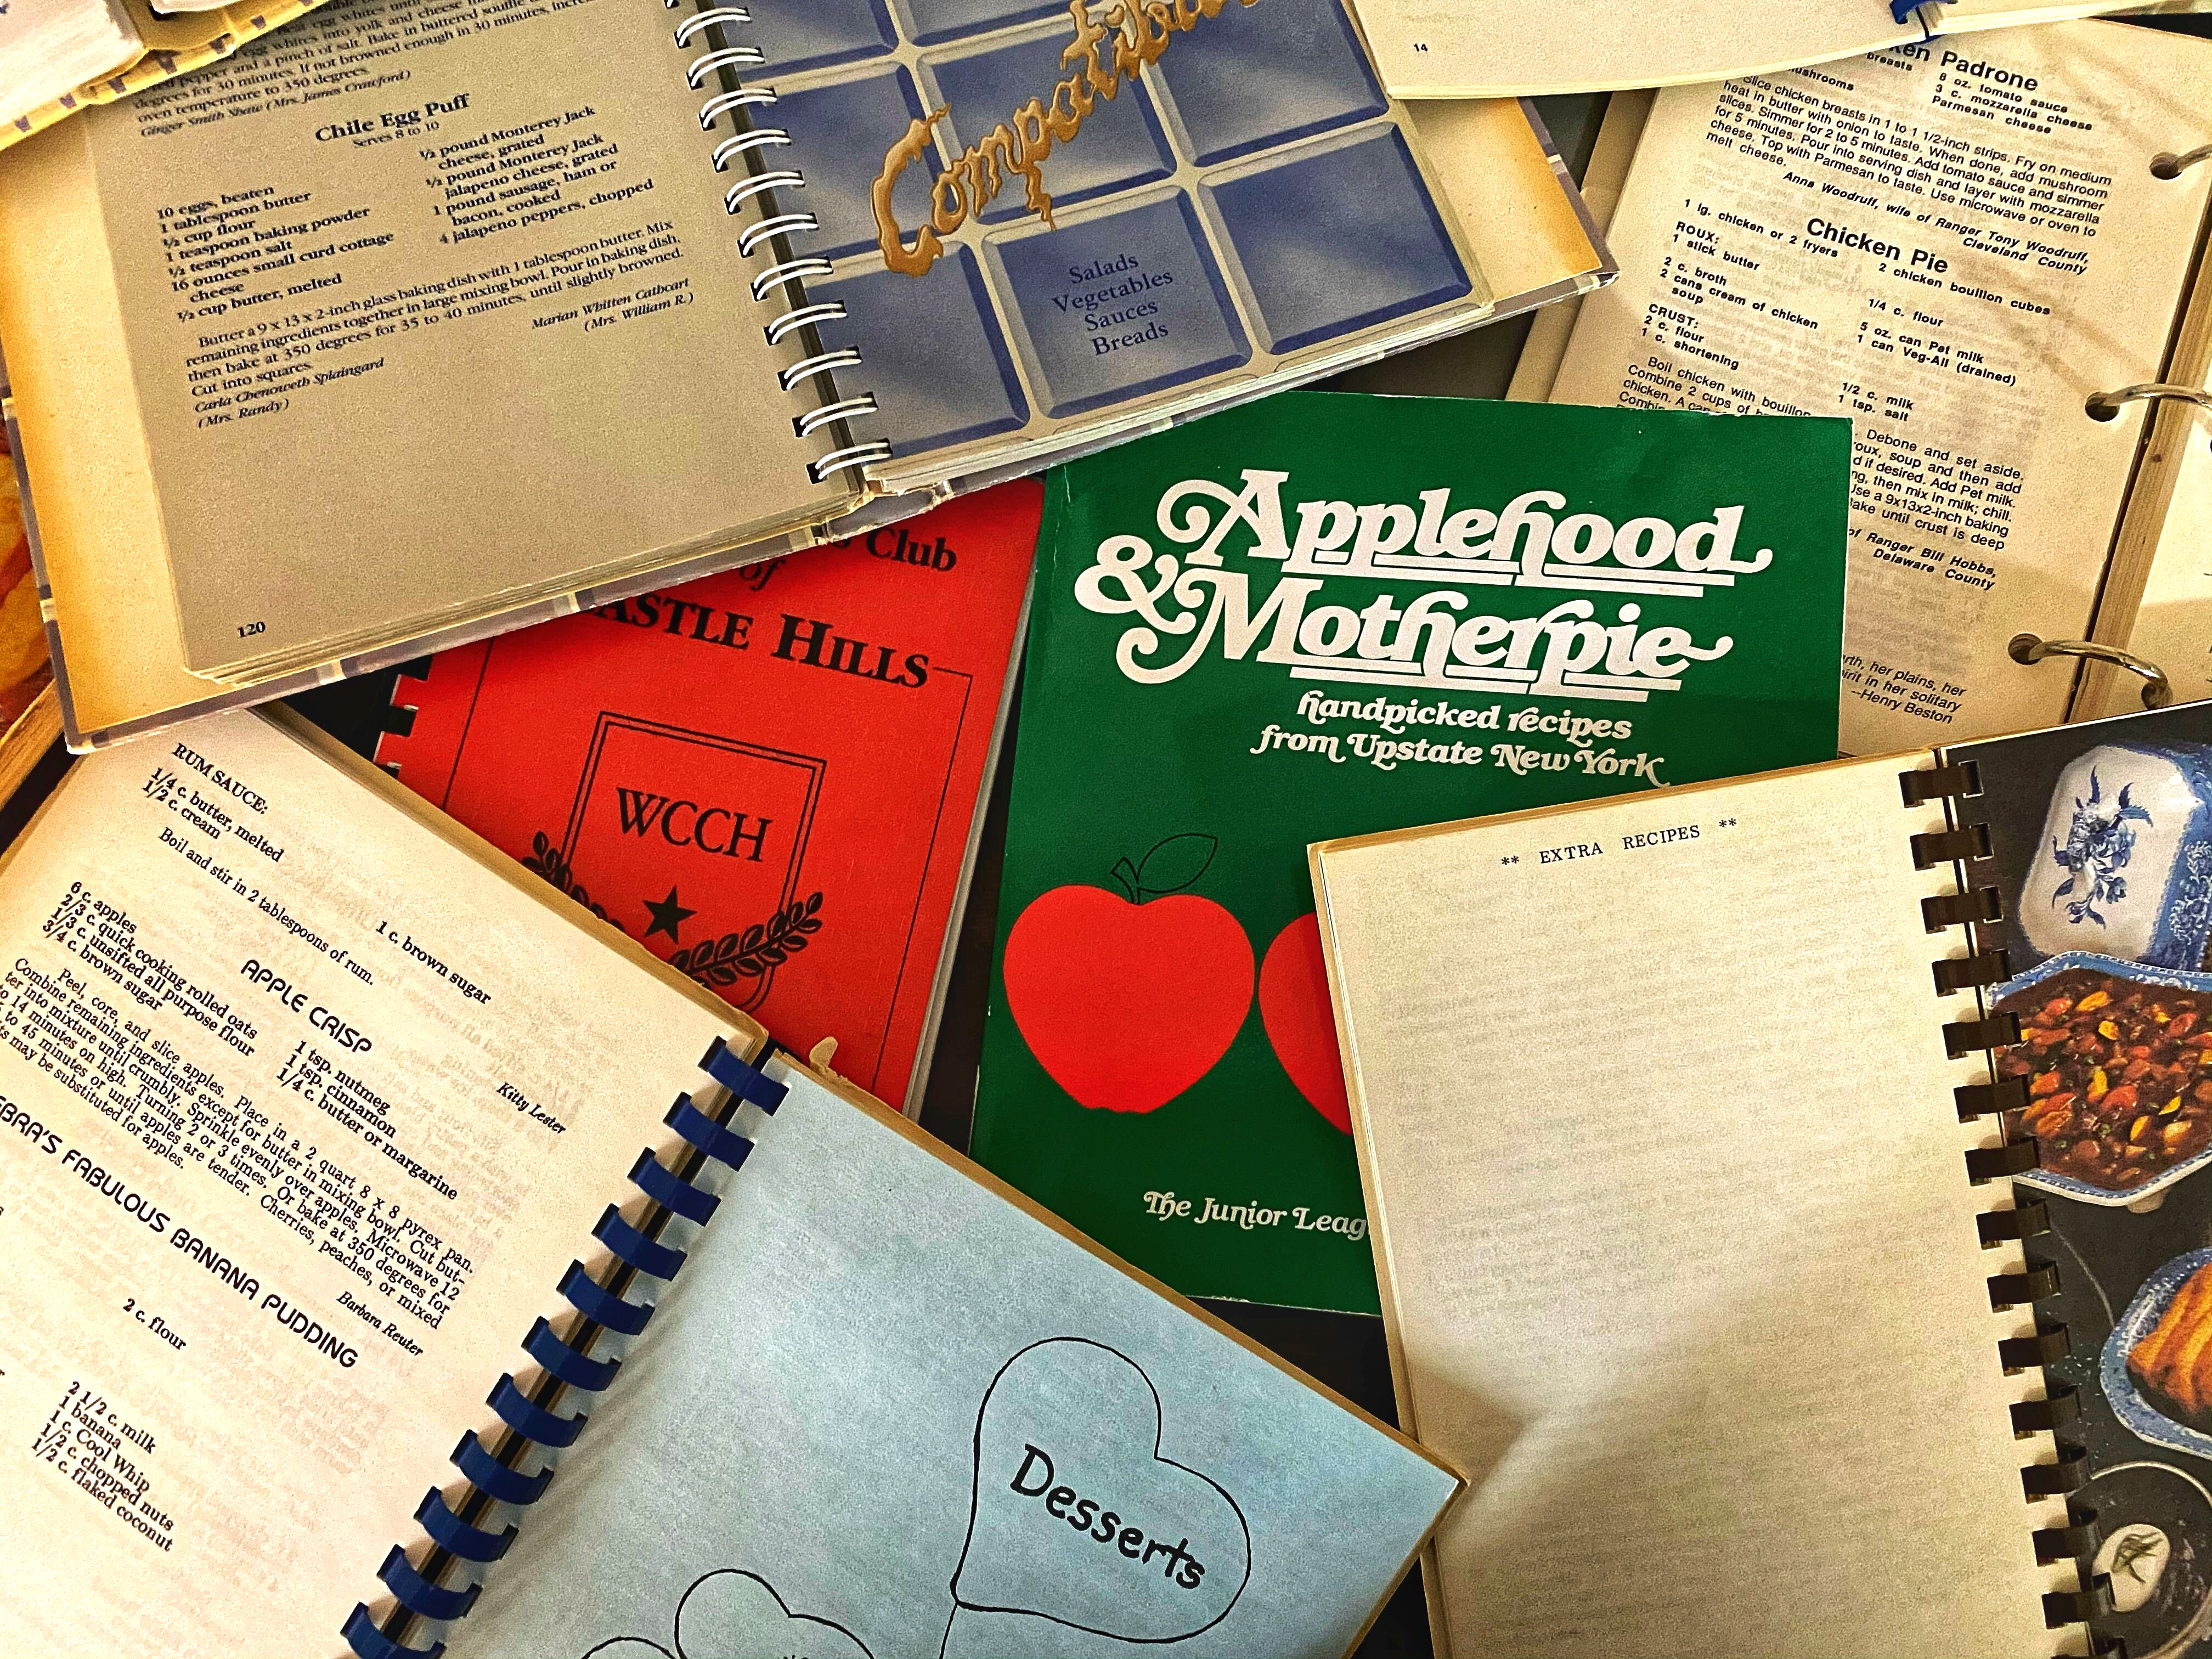 A pile of spiral-bound cookbooks, several open.